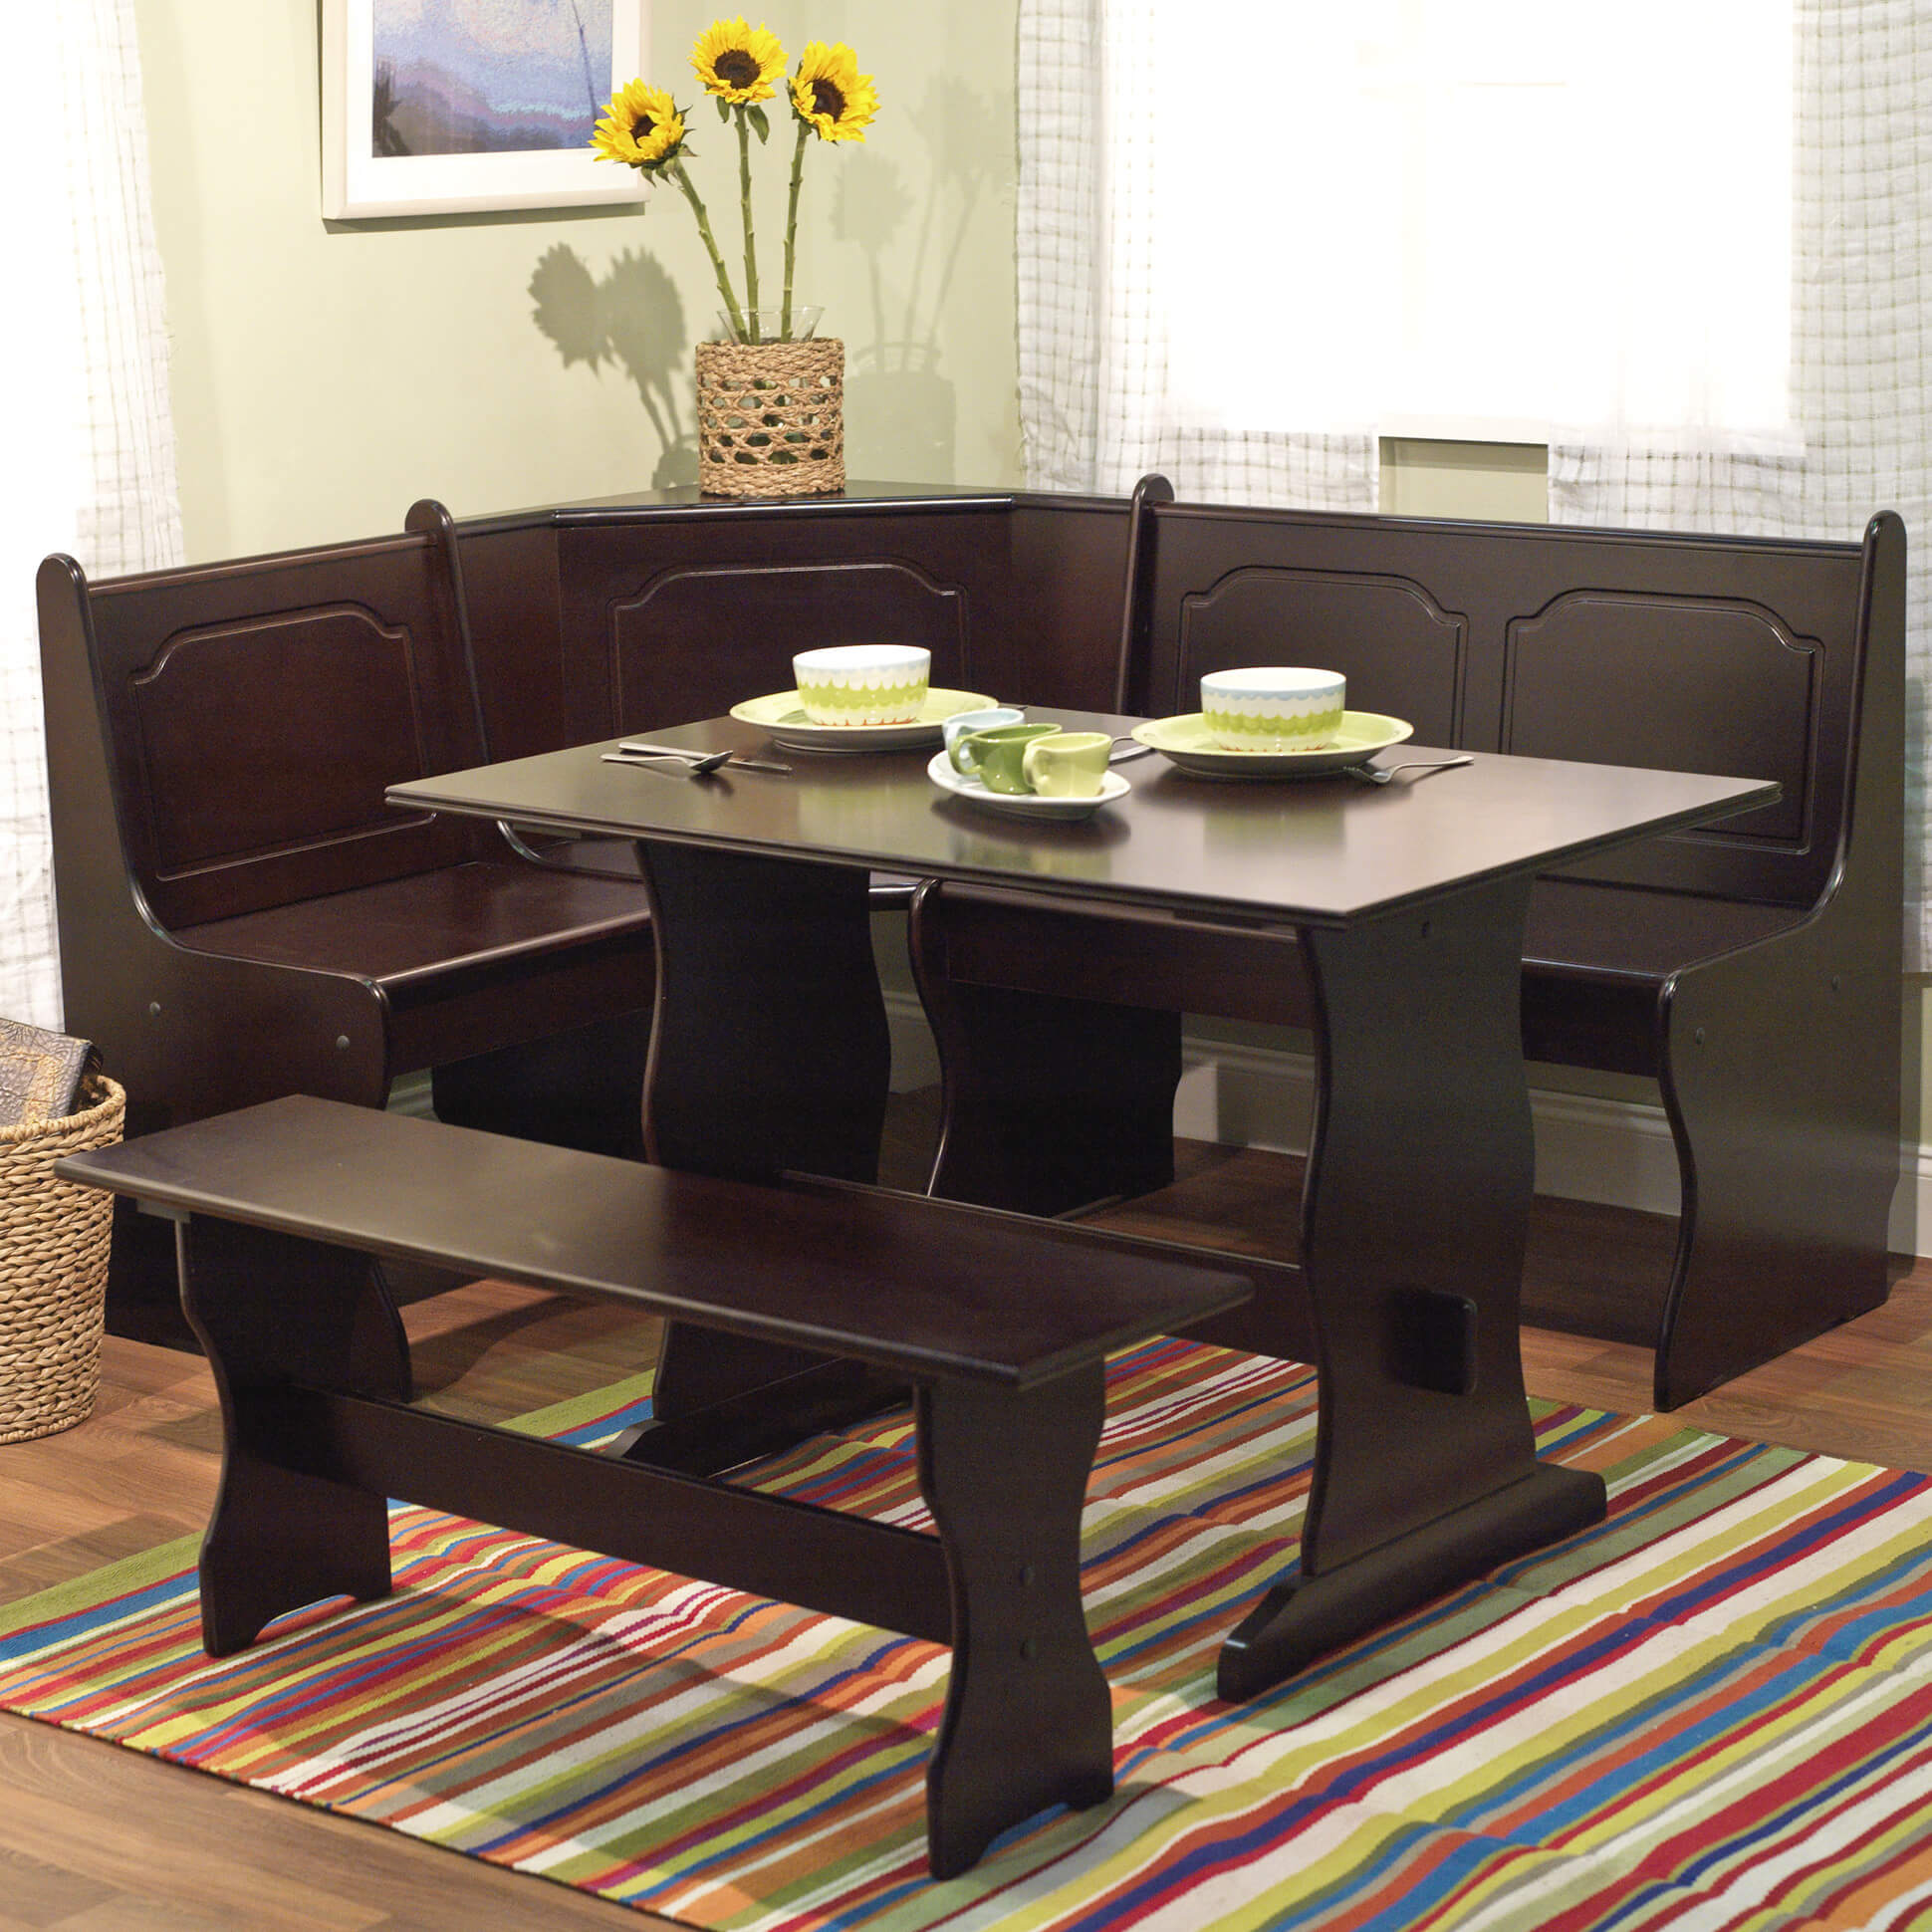 Space saving kitchen tables - 2 Tms Breakfast Nook